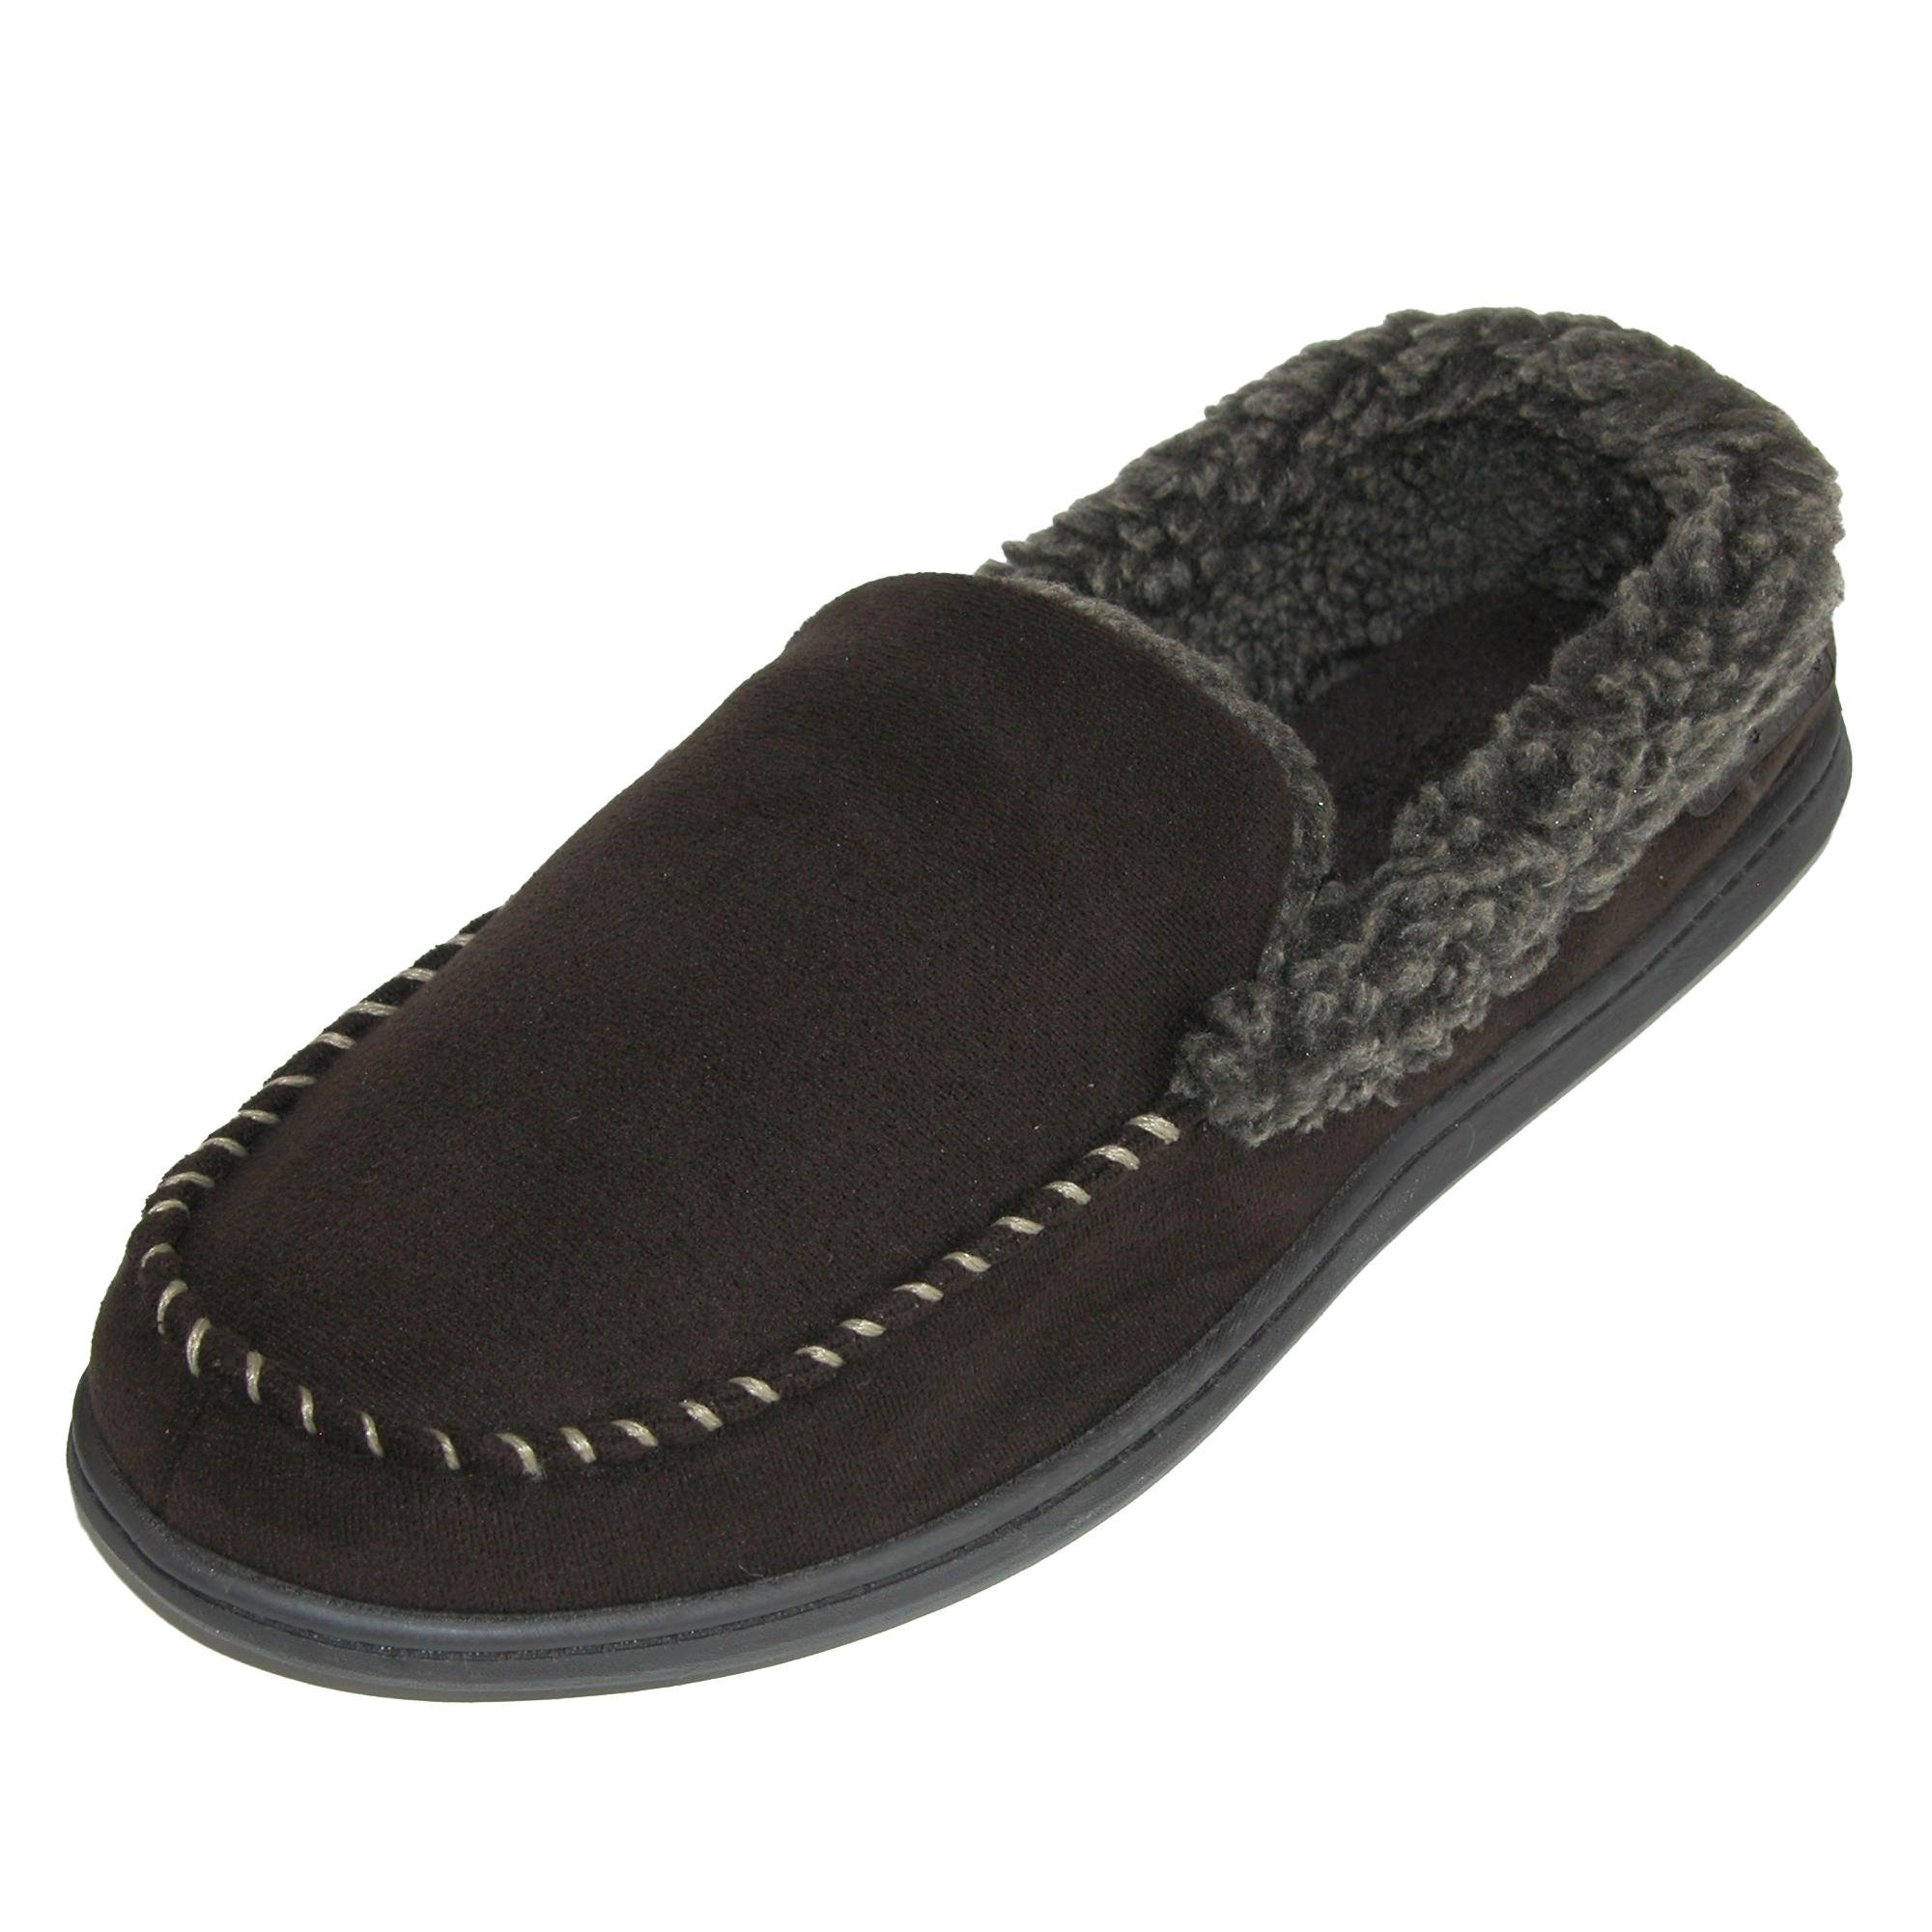 Dearfoams Men's Microfiber Suede Closed Back Moccasin Style Slipper – Padded Slip-ONS Memory Foam Insole, Can be Worn Indoors Outdoors